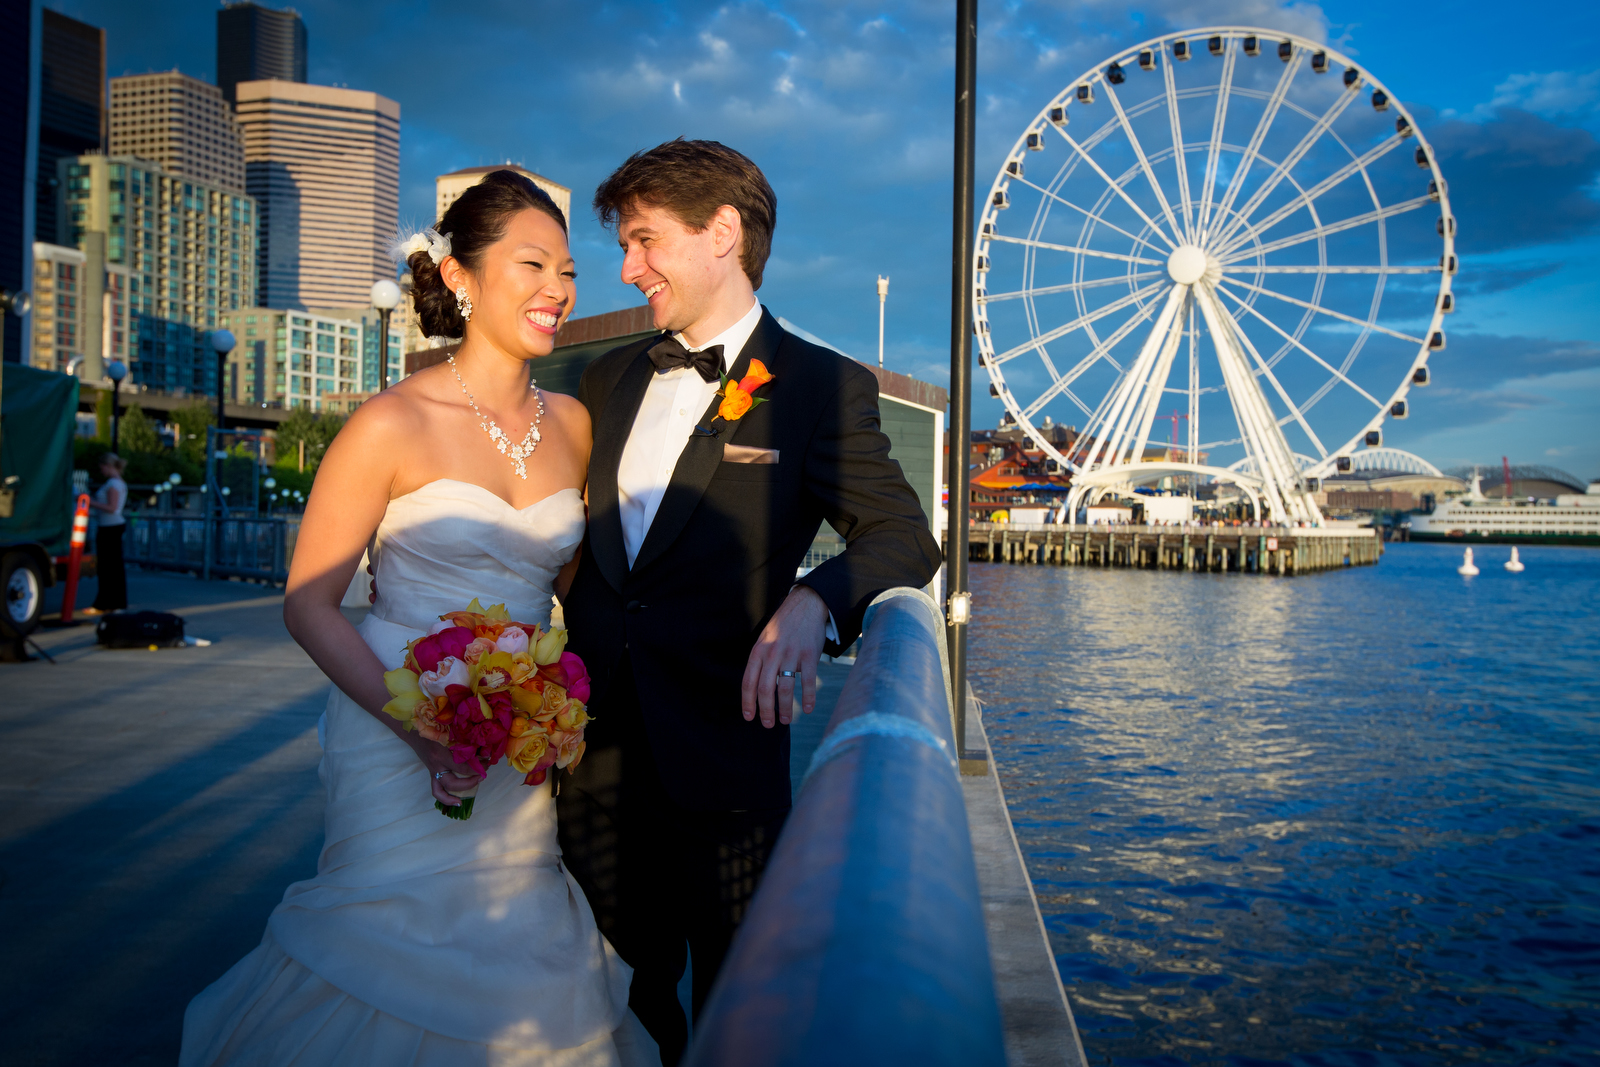 A portrait of the bride & groom in front of the Great Seattle Wheel on the waterfront during their wedding at the Seattle Aquarium. (Wedding Photography by Scott Eklund - Red Box Pictures)